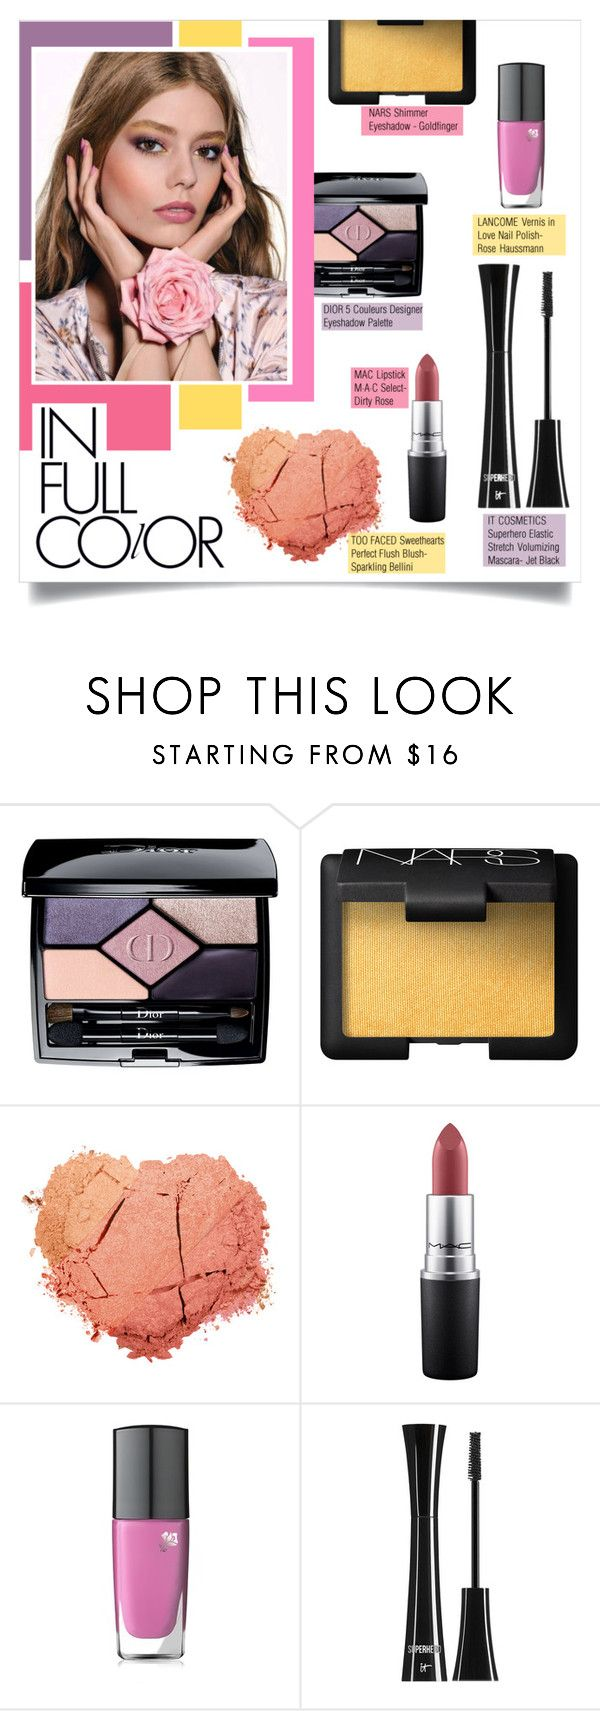 """""""In Full Color"""" by mila-me ❤ liked on Polyvore featuring beauty, Christian Dior, NARS Cosmetics, MAC Cosmetics, Lancôme and It Cosmetics"""